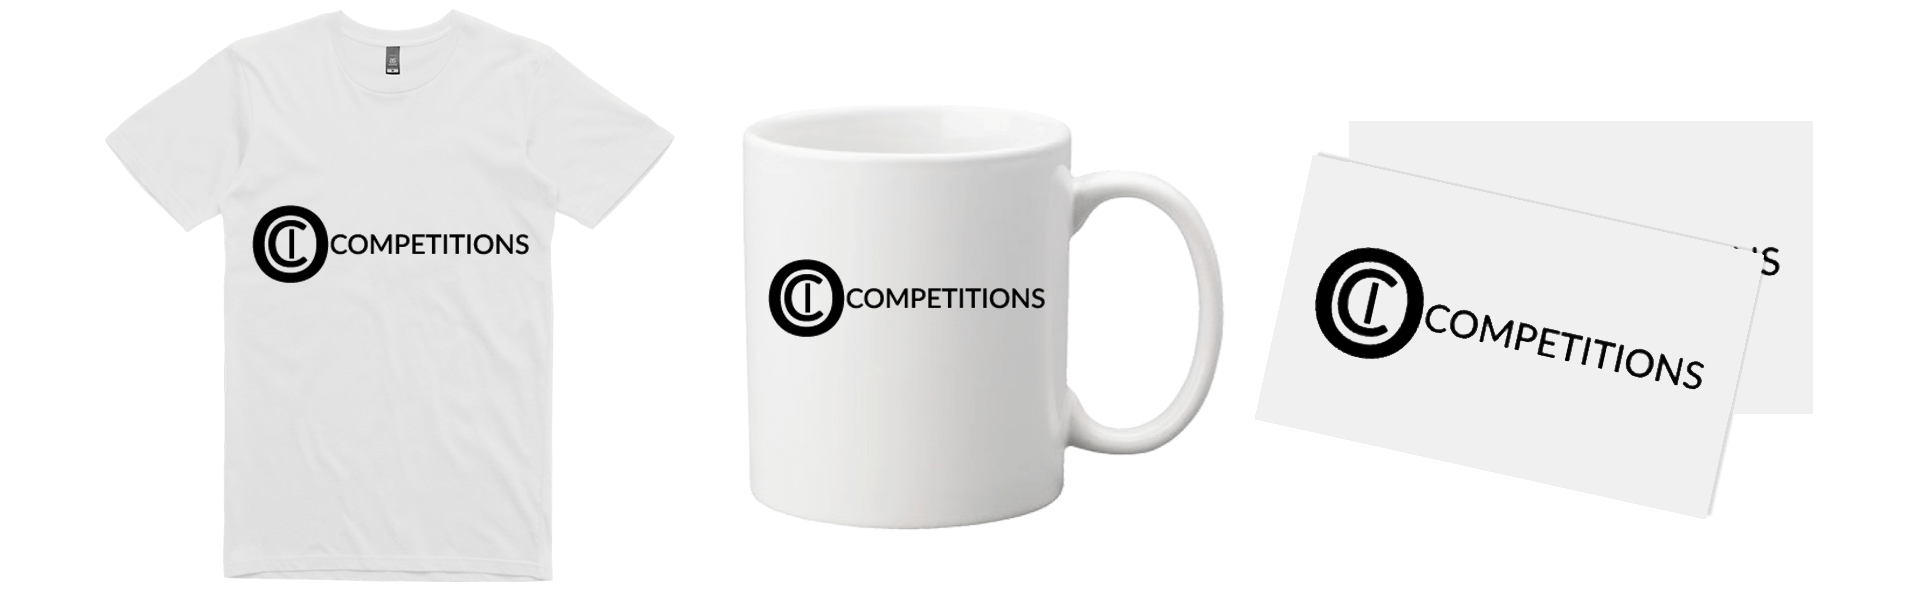 oci competitions